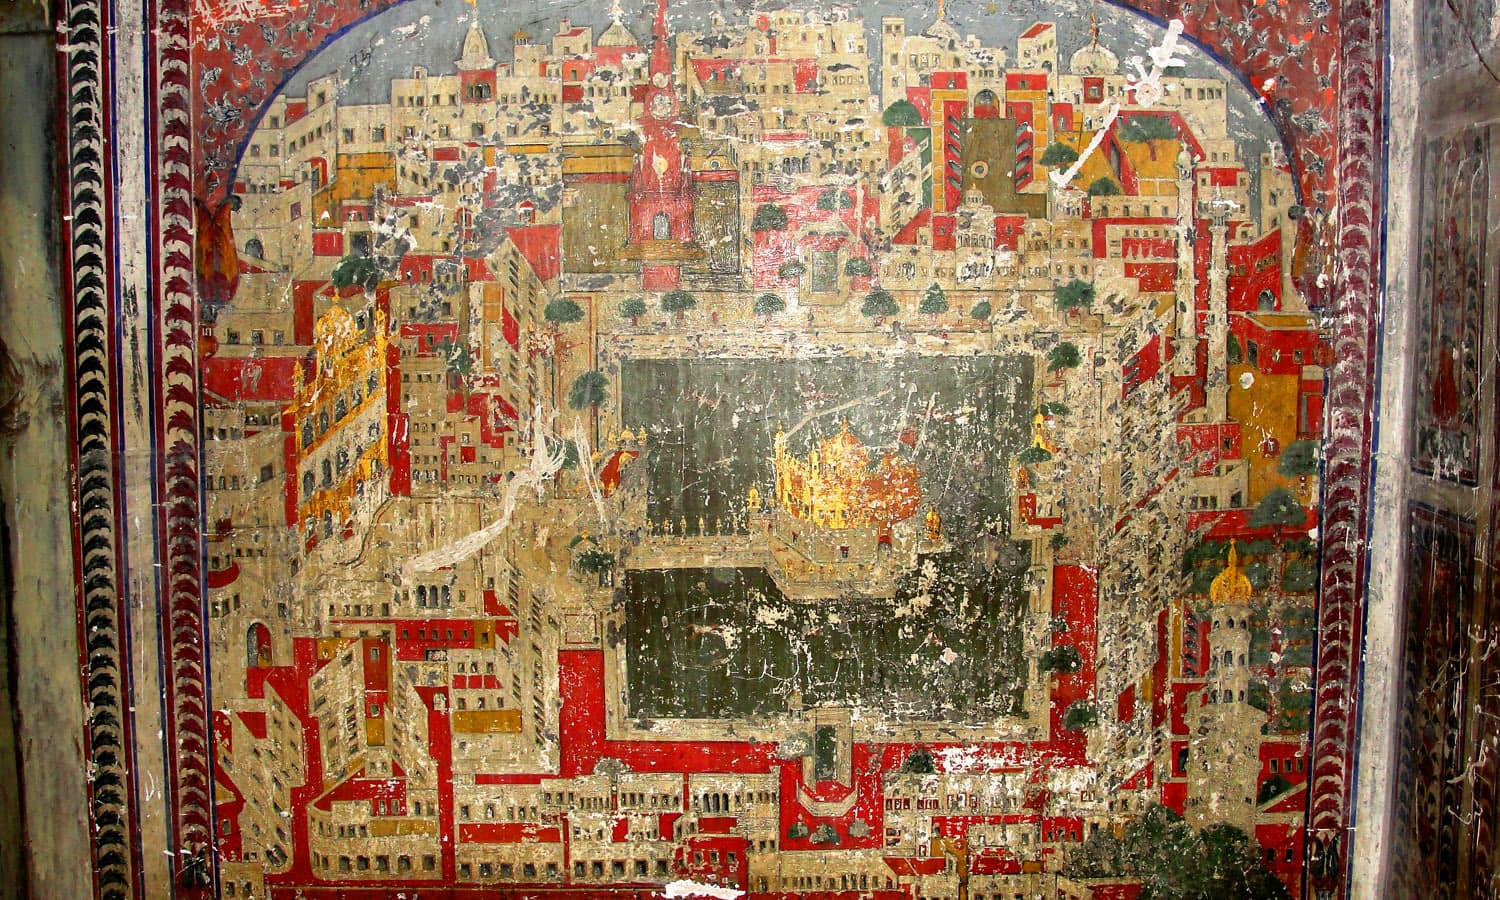 A depiction of the Golden Temple of Amritsar in Khem Singh Bedi Haveli.